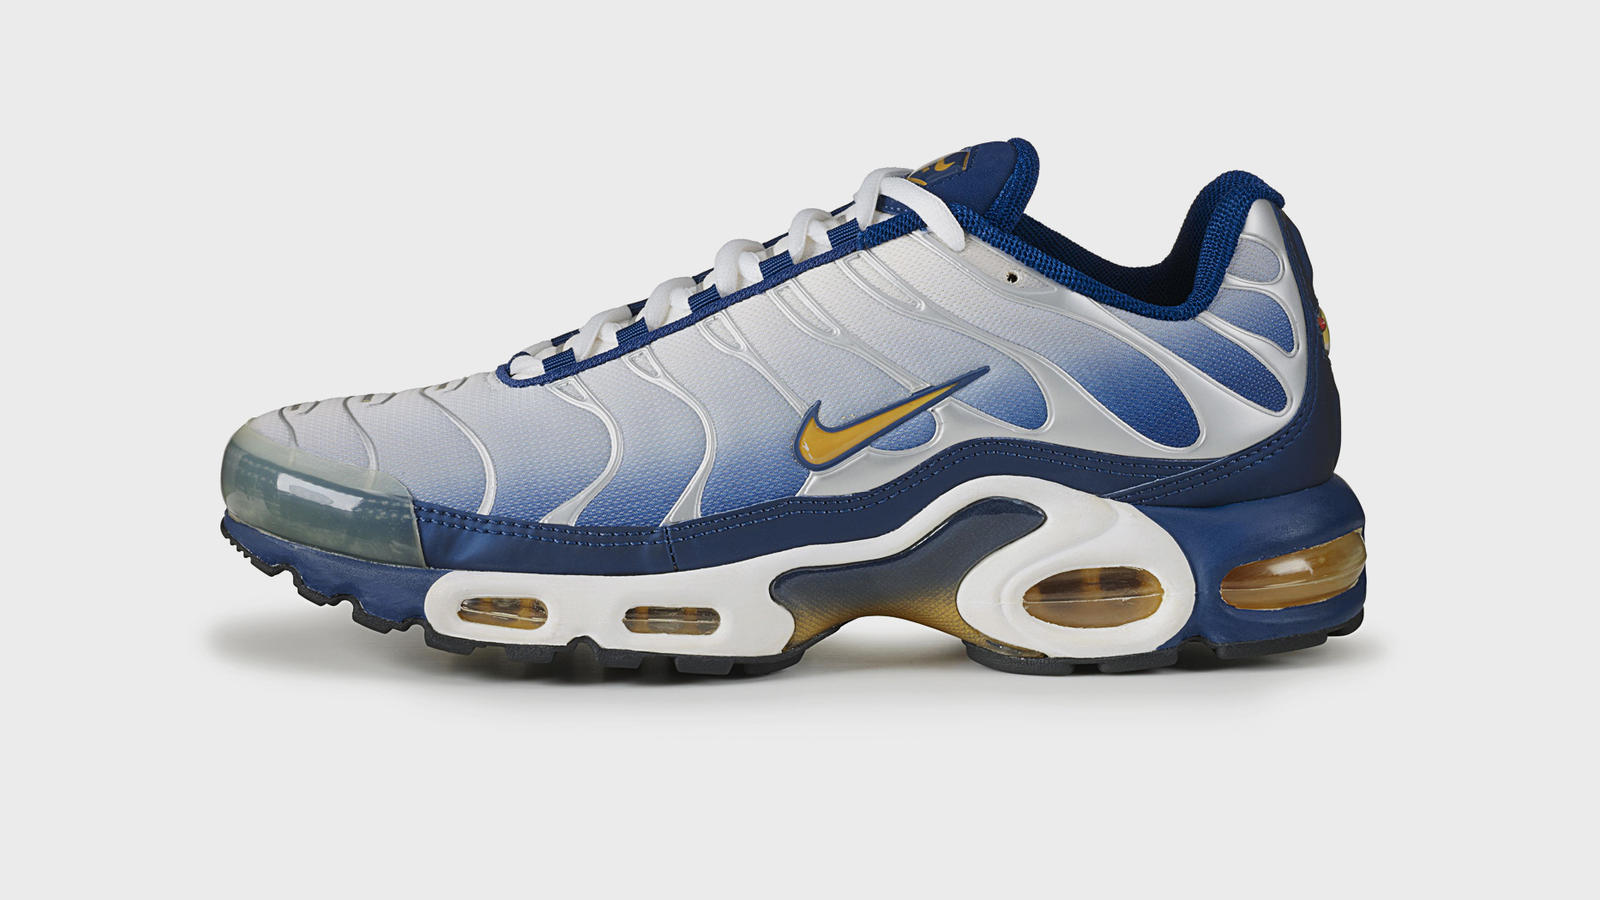 competitive price 799f5 9a6b7 The Untold Story of the Nike Air Max Plus 24